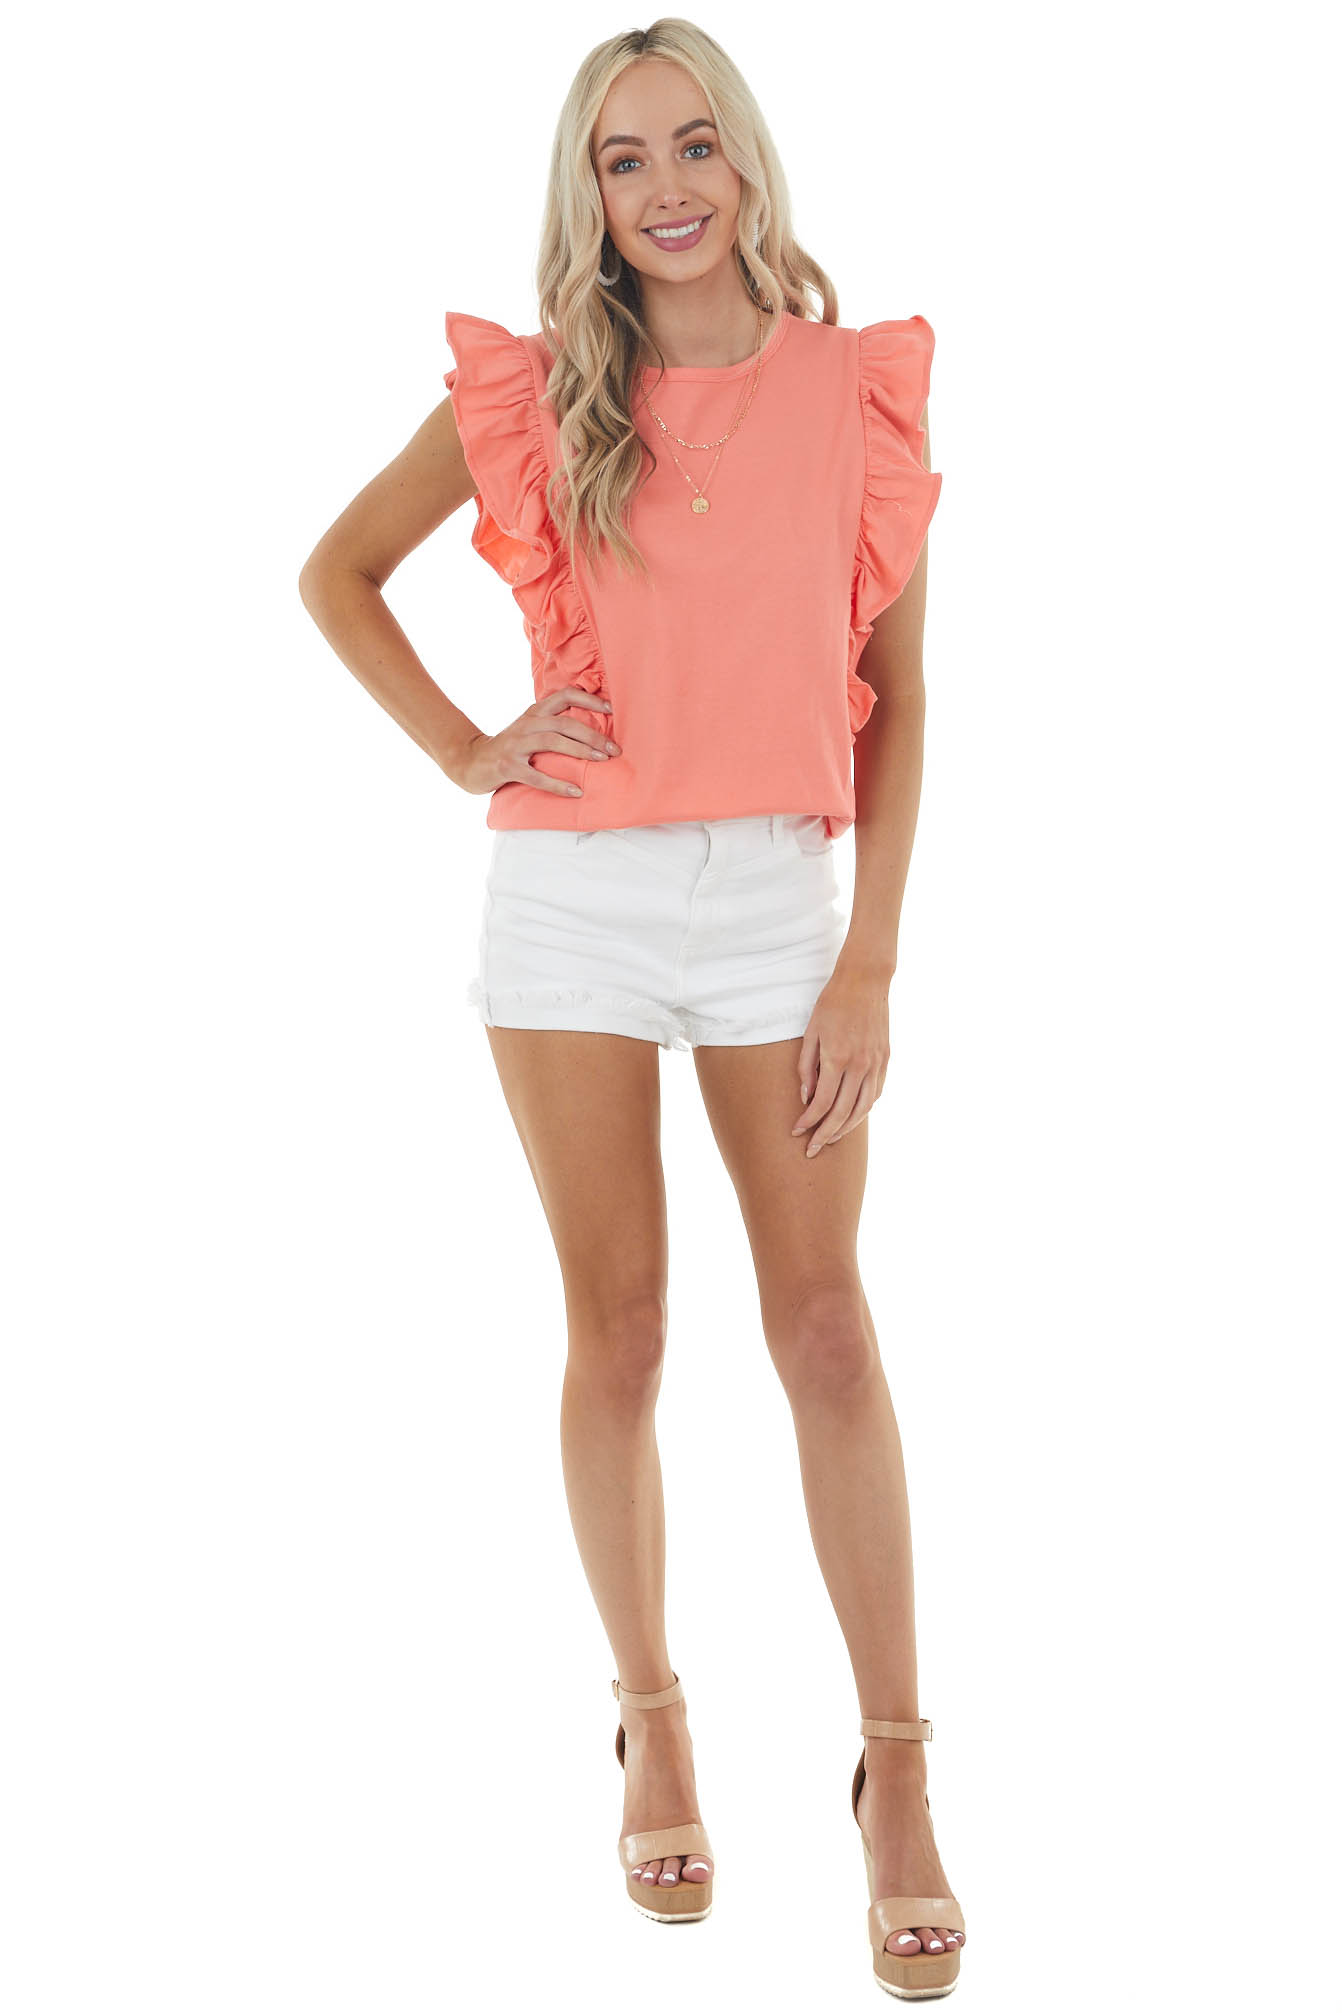 Coral Ruffled Cap Sleeve Knit Top with Rounded Neckline